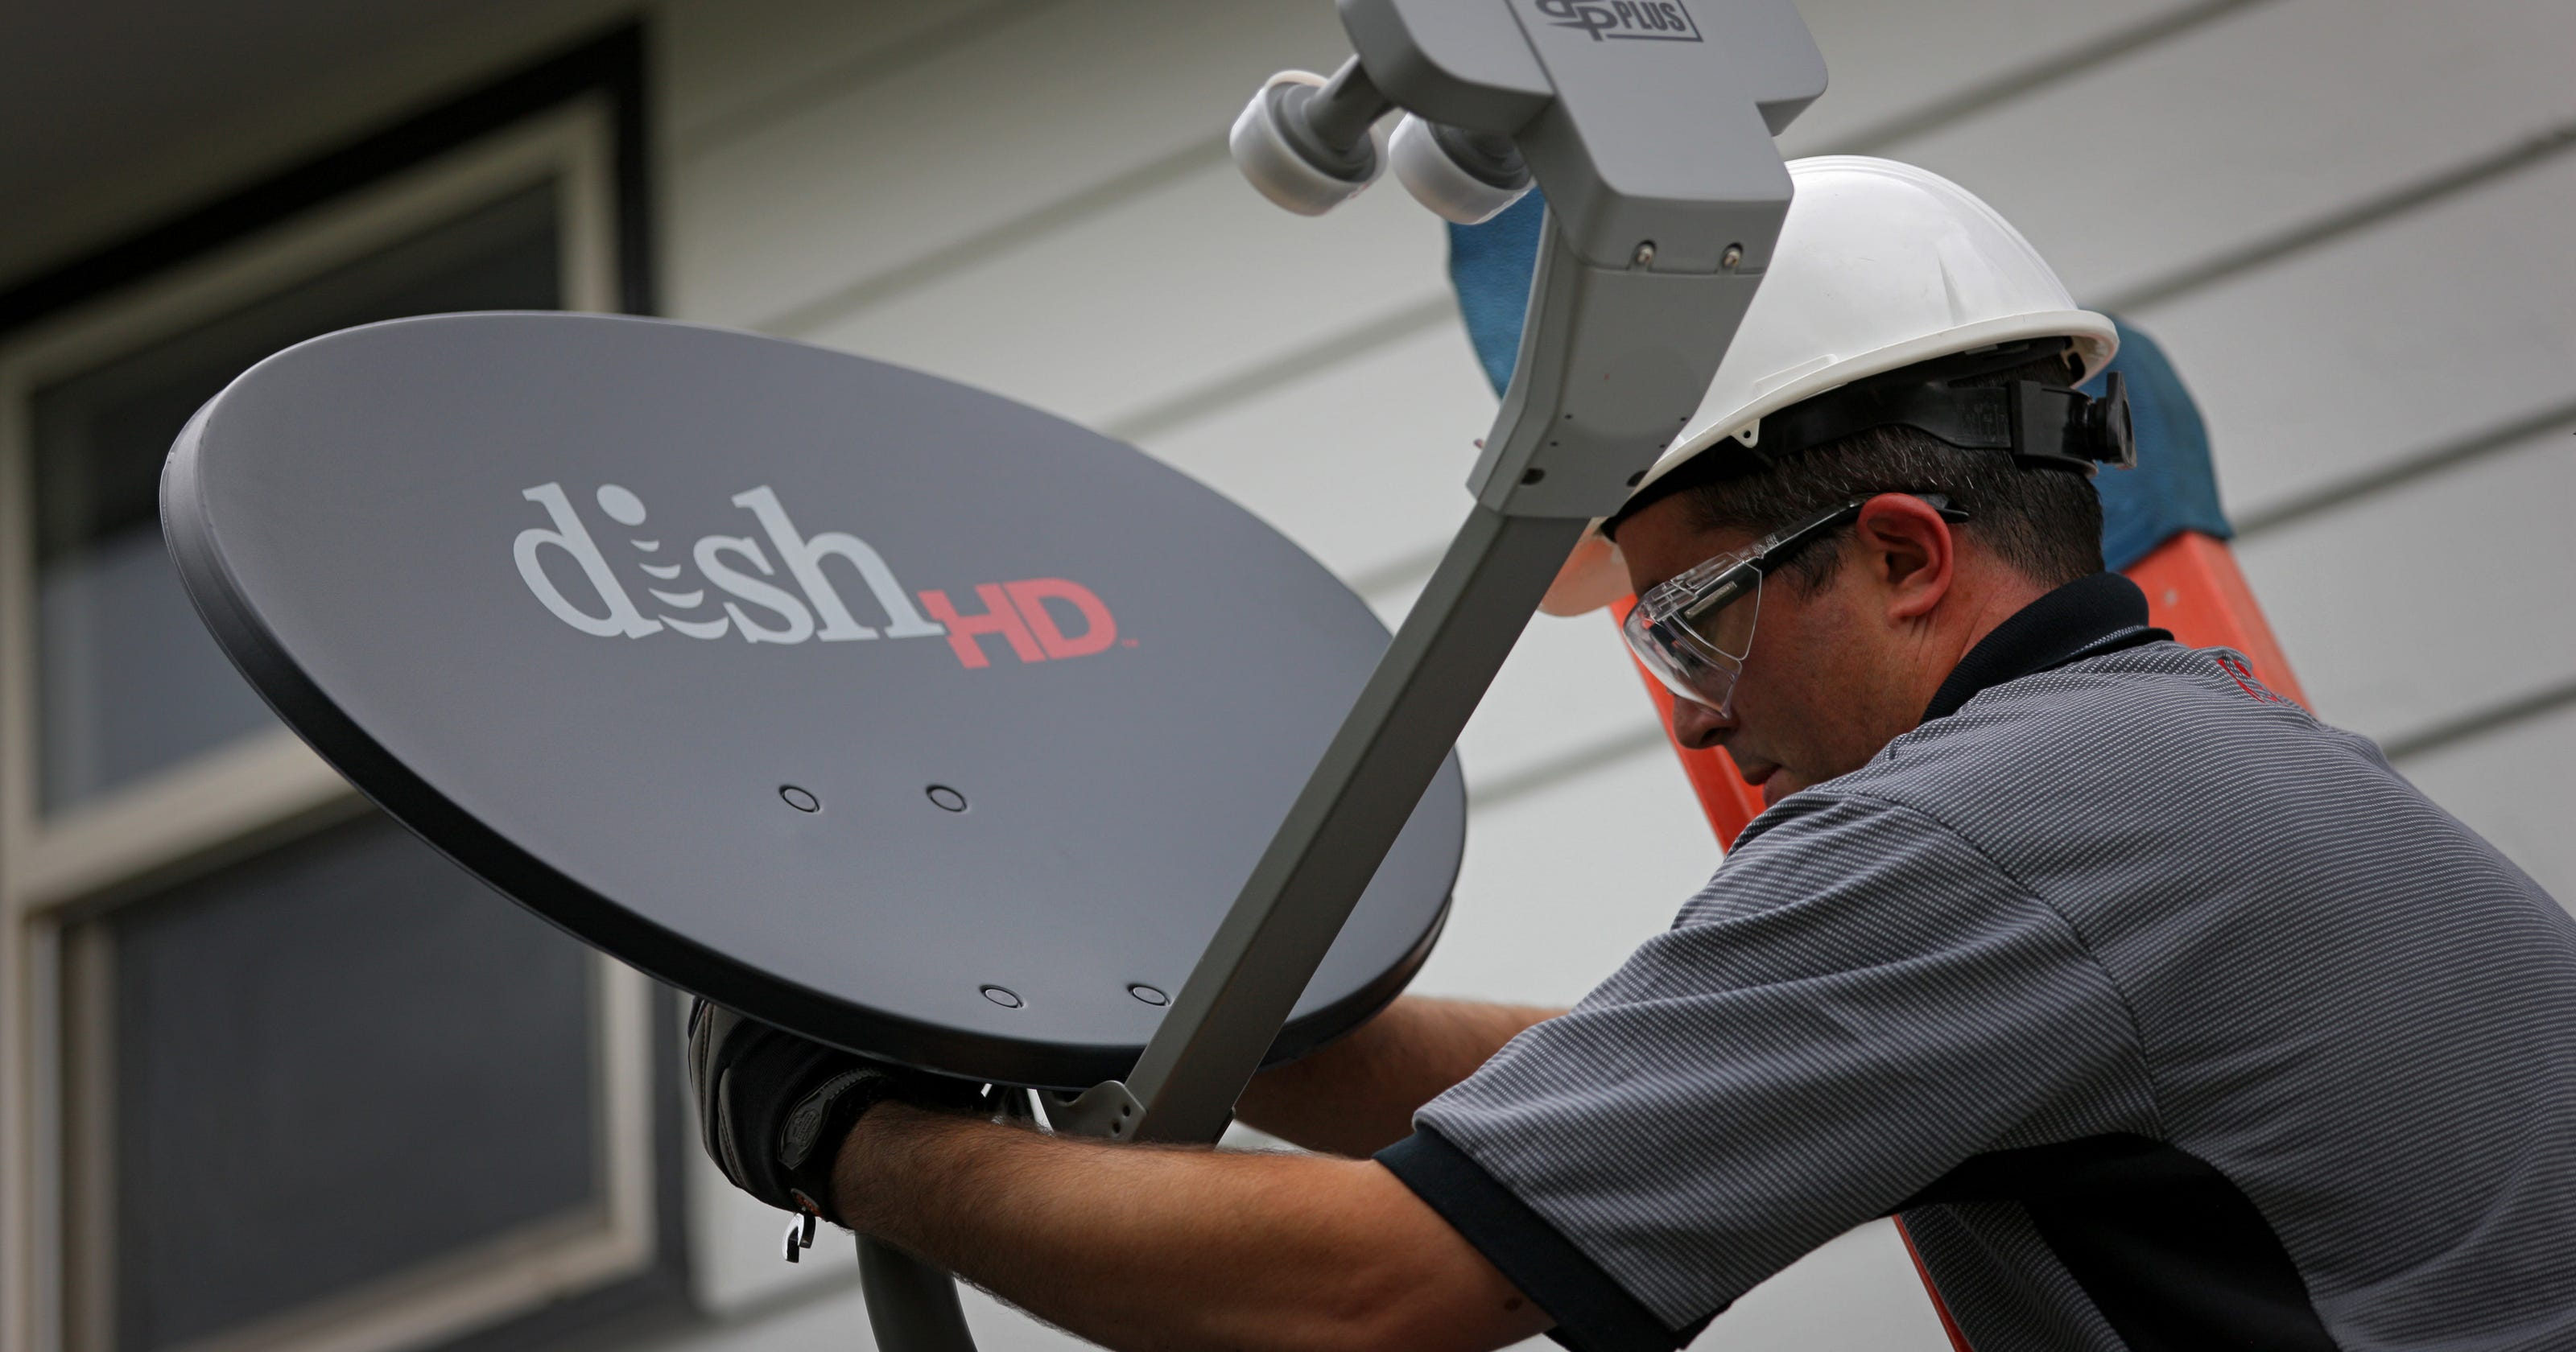 Local stations returning for Dish Network customers